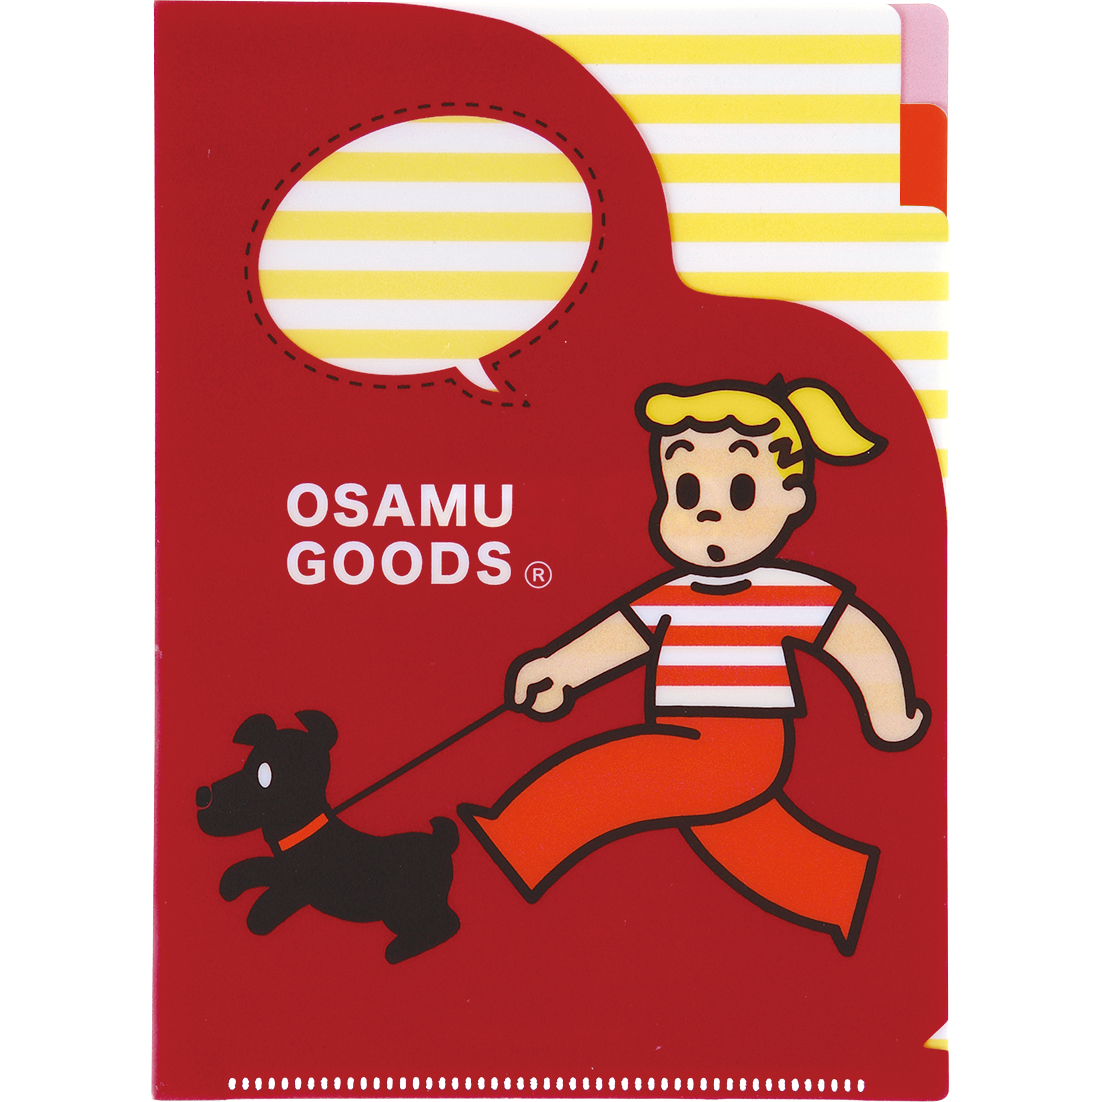 OSAMU GOODS オサムグッズ<br>A5 3ポケットファイル(散歩)